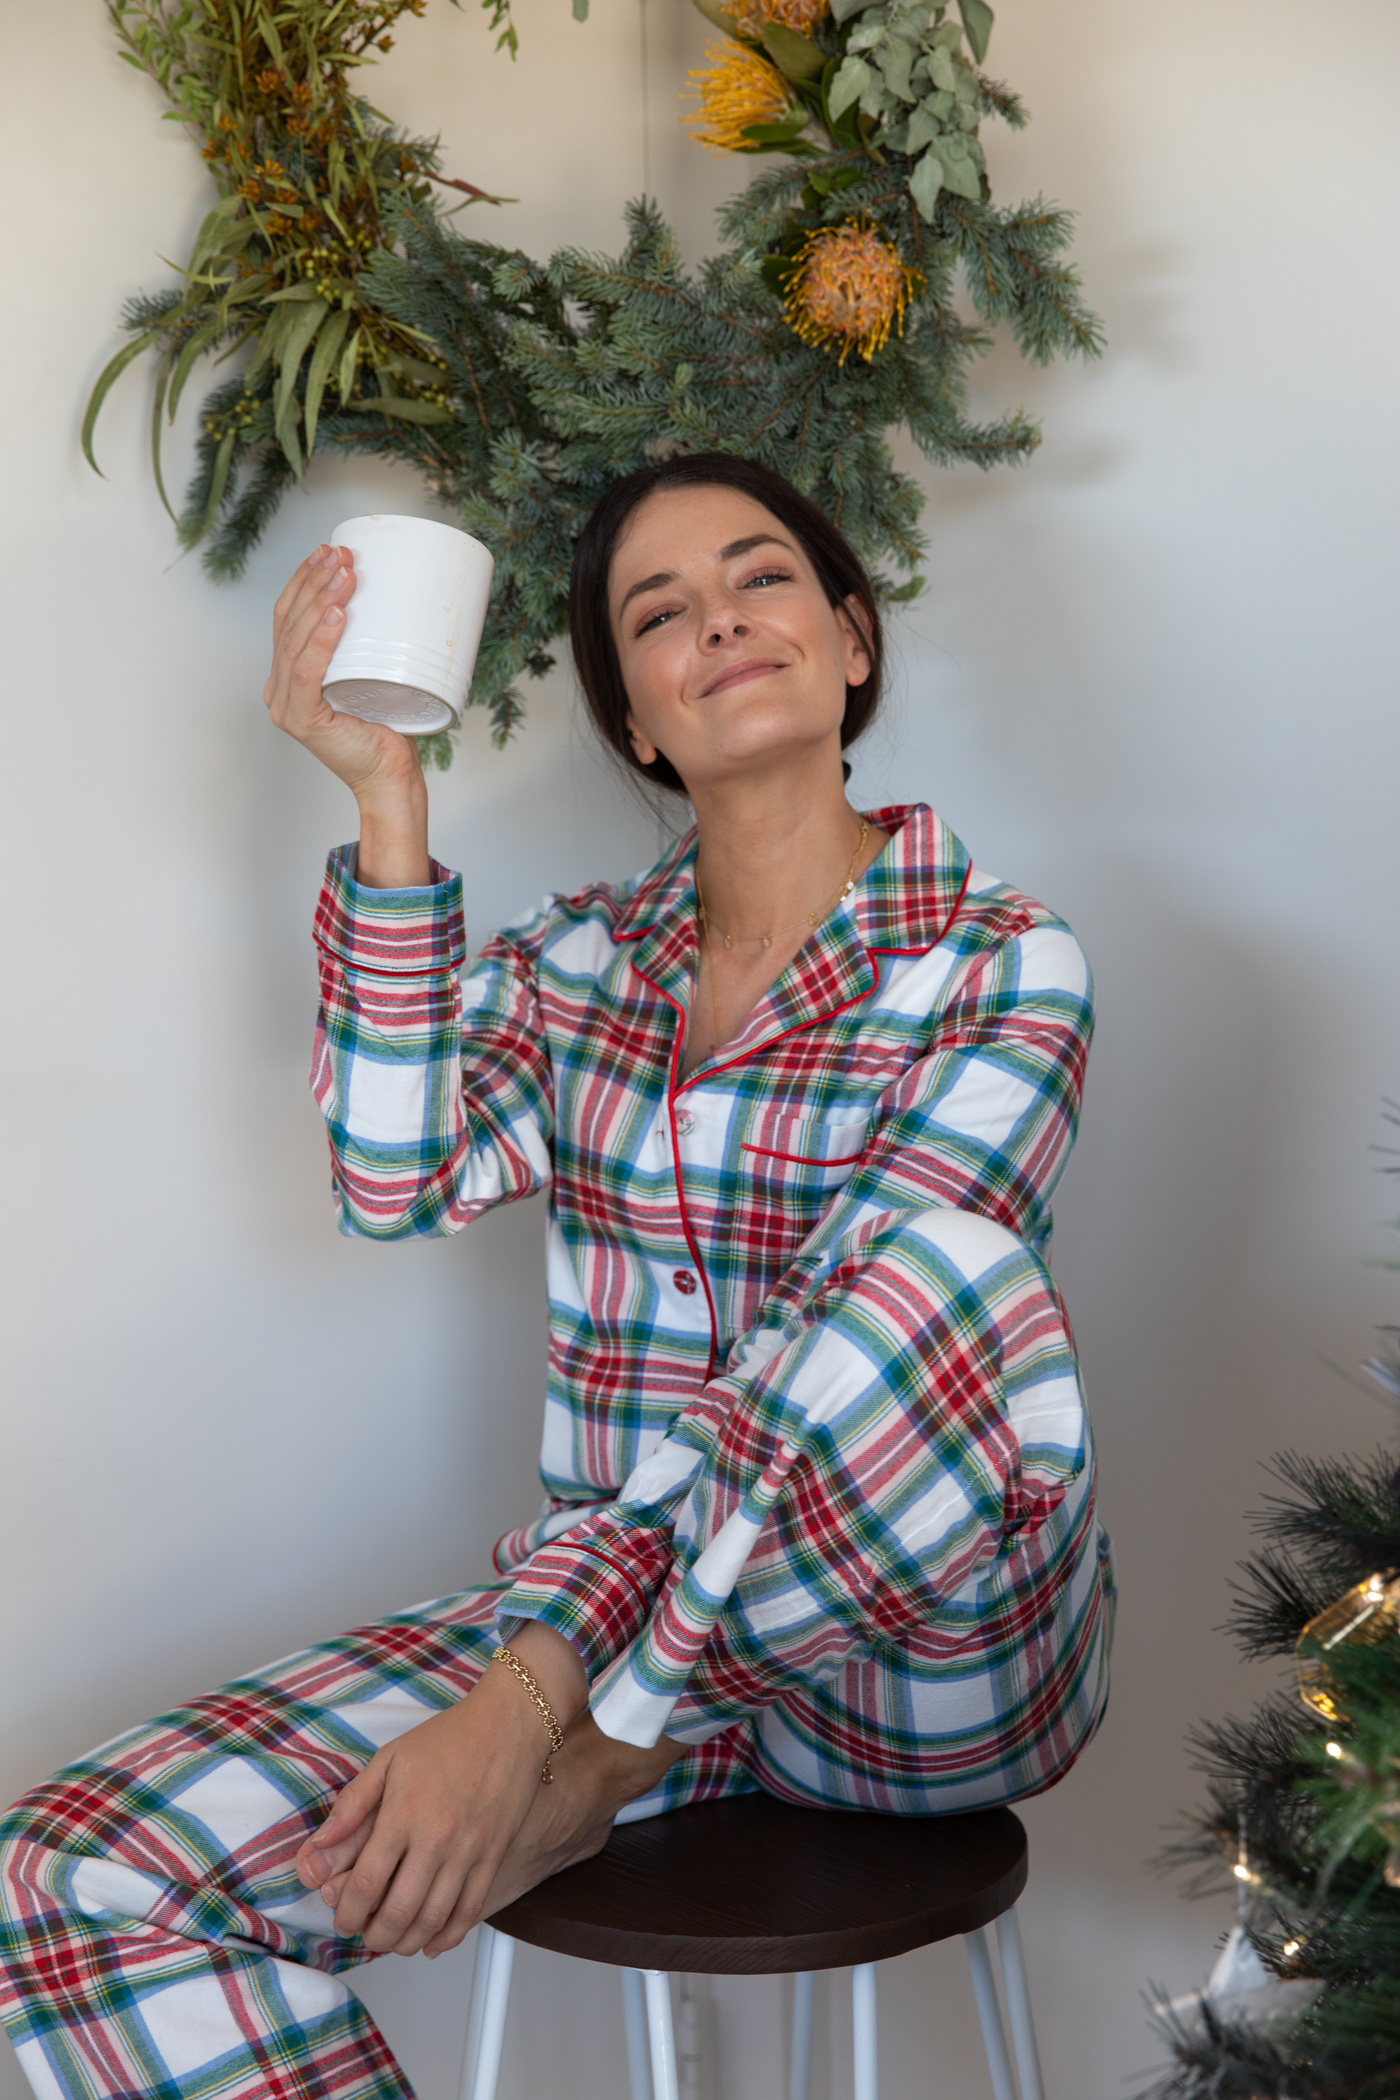 Boden pjs for Christmas at home